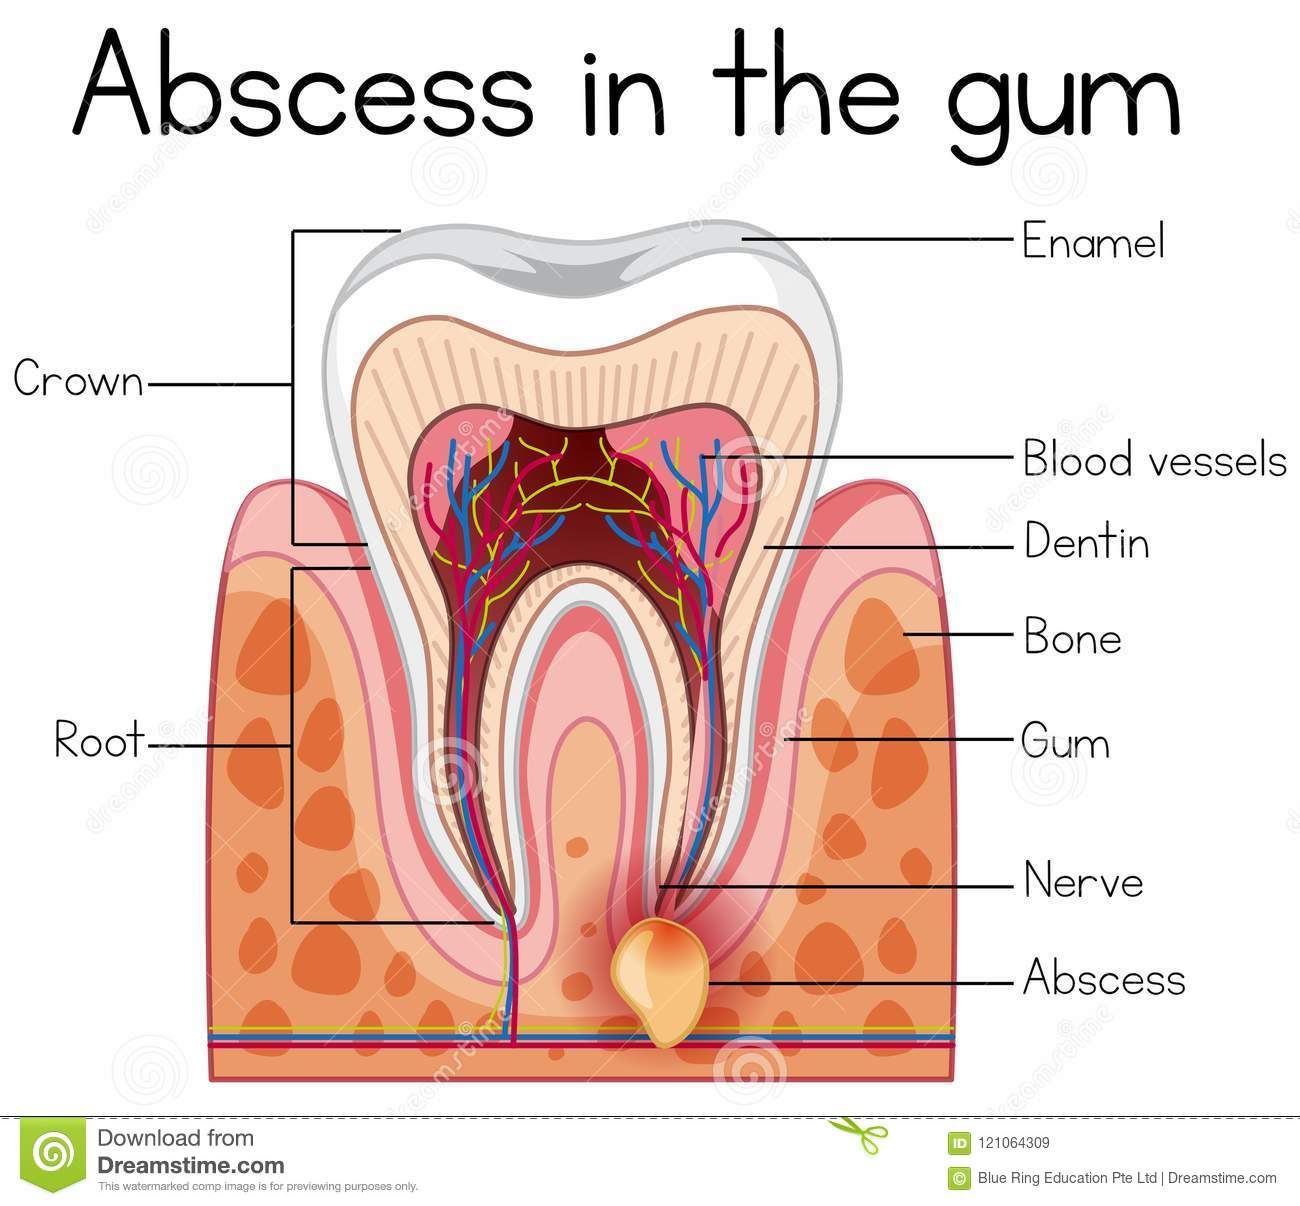 hight resolution of abscess in the gum diagram